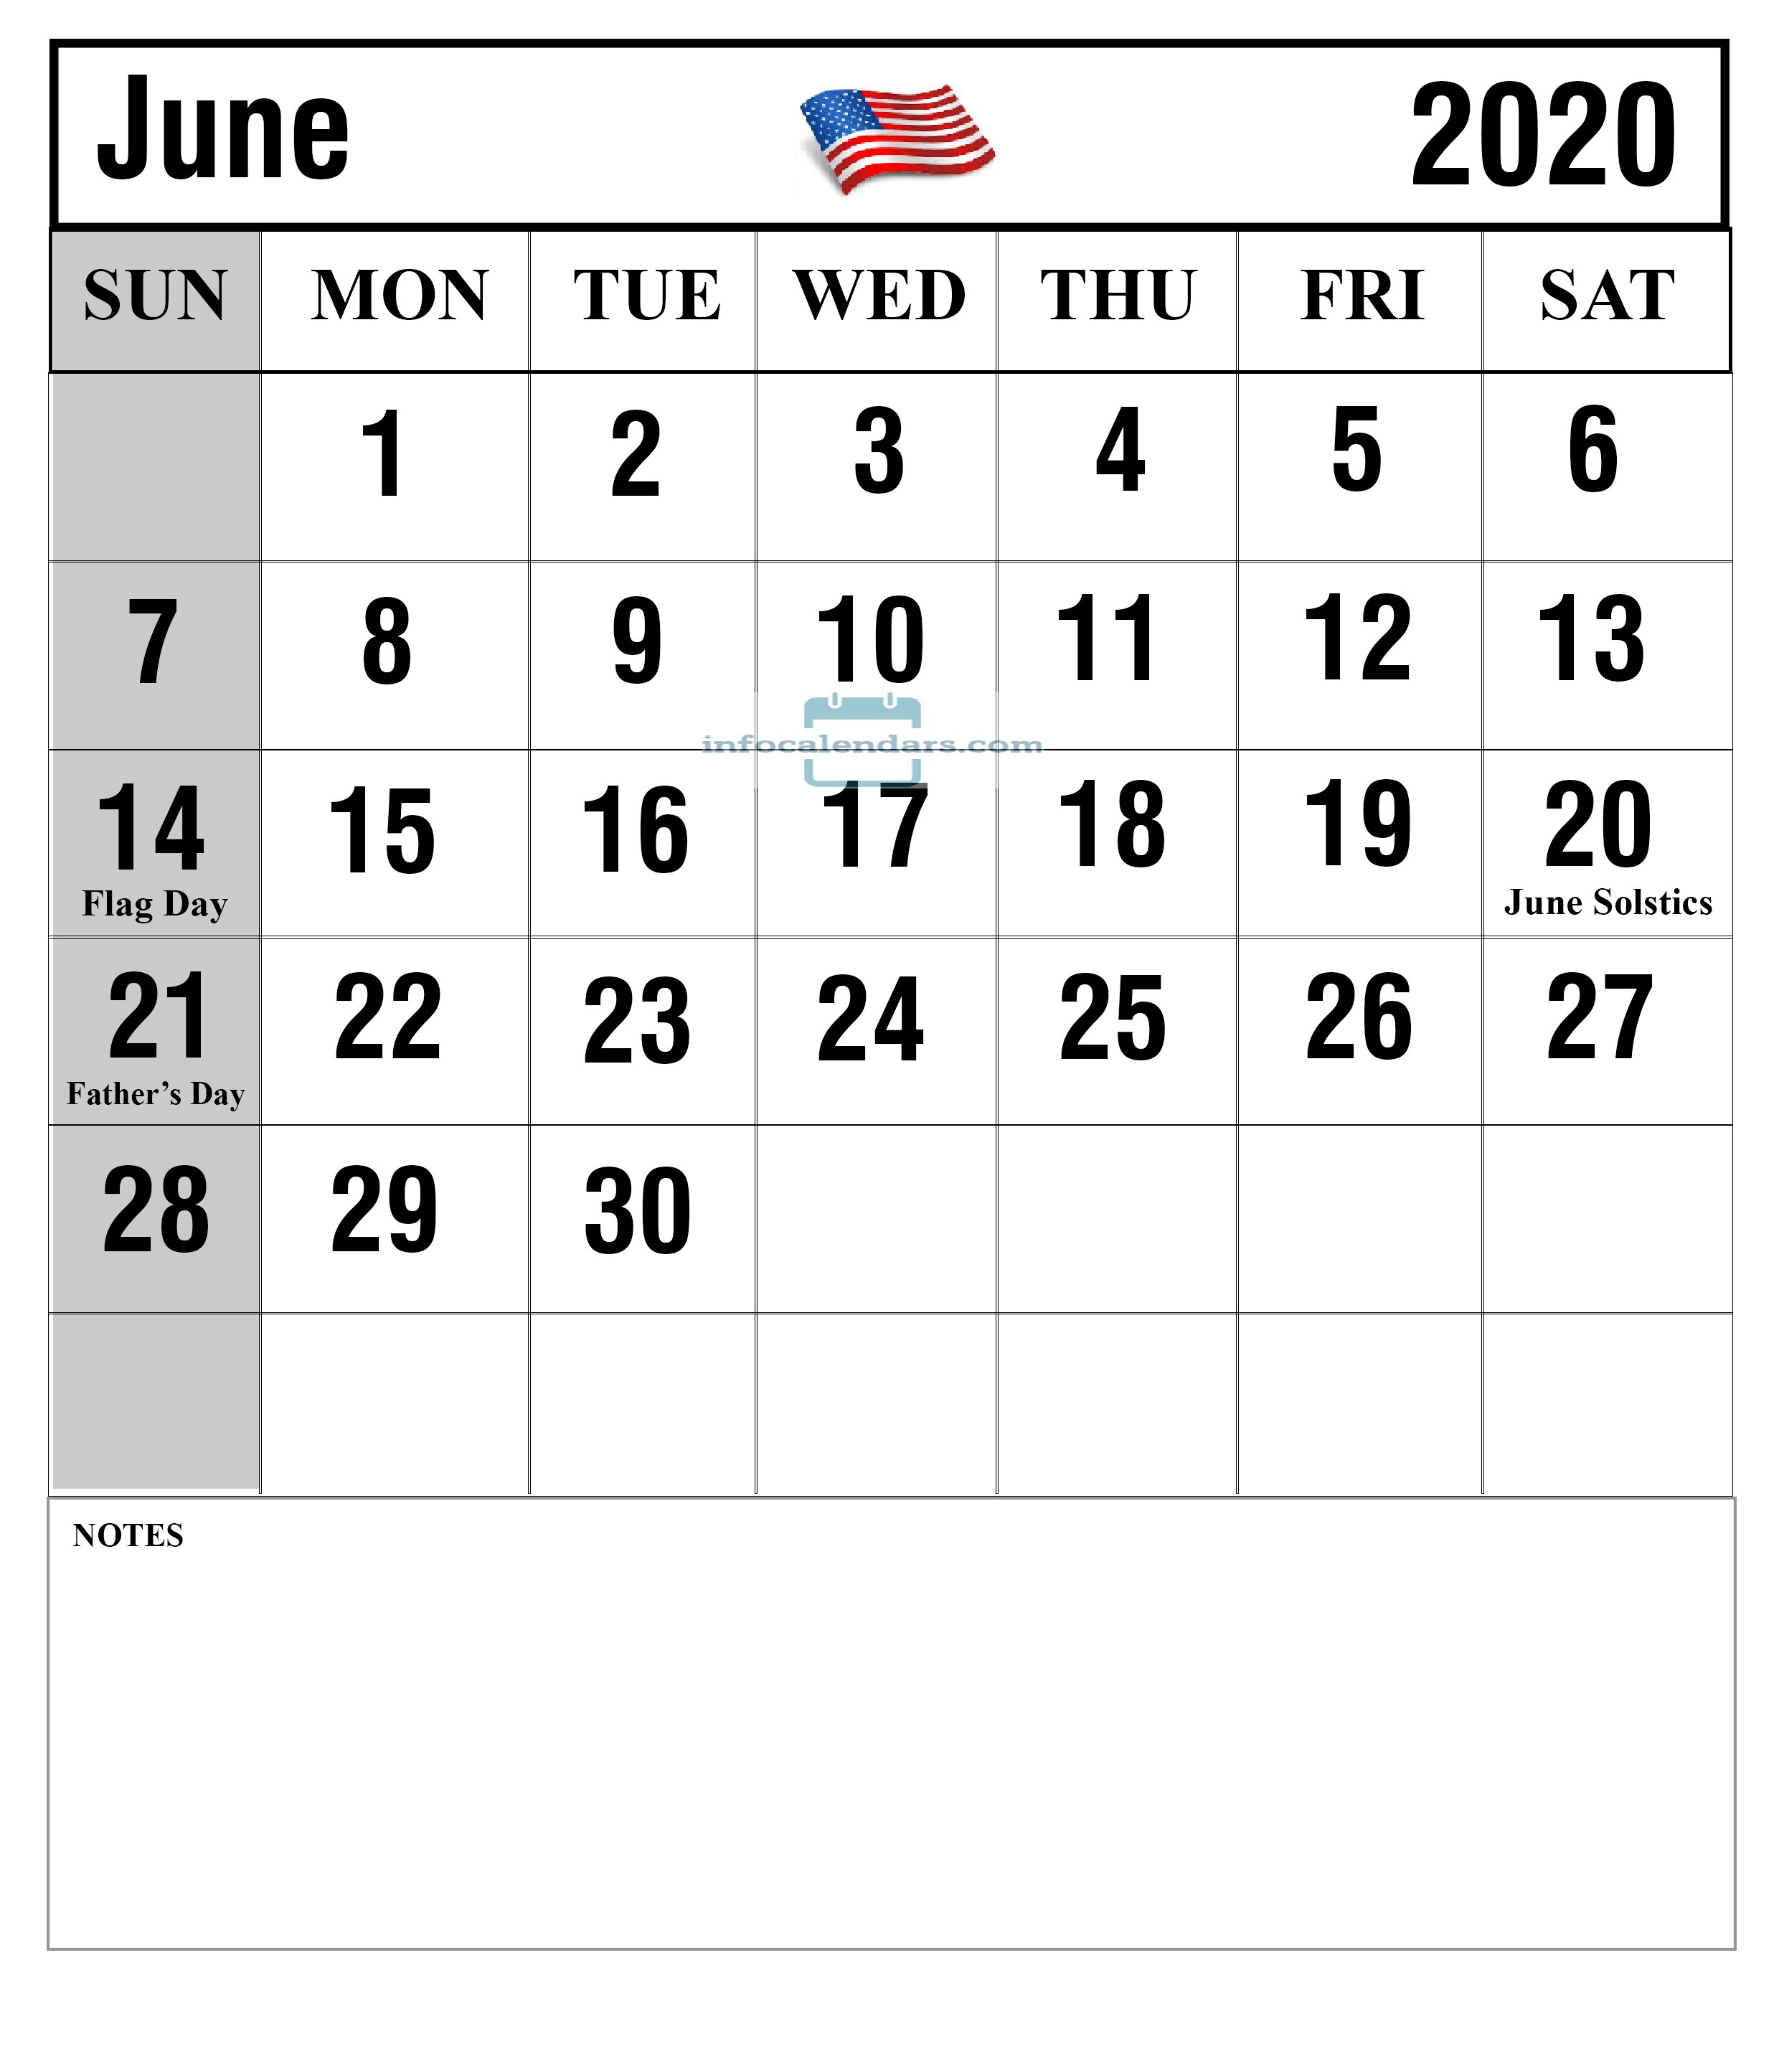 Notes Calendar For June 2020